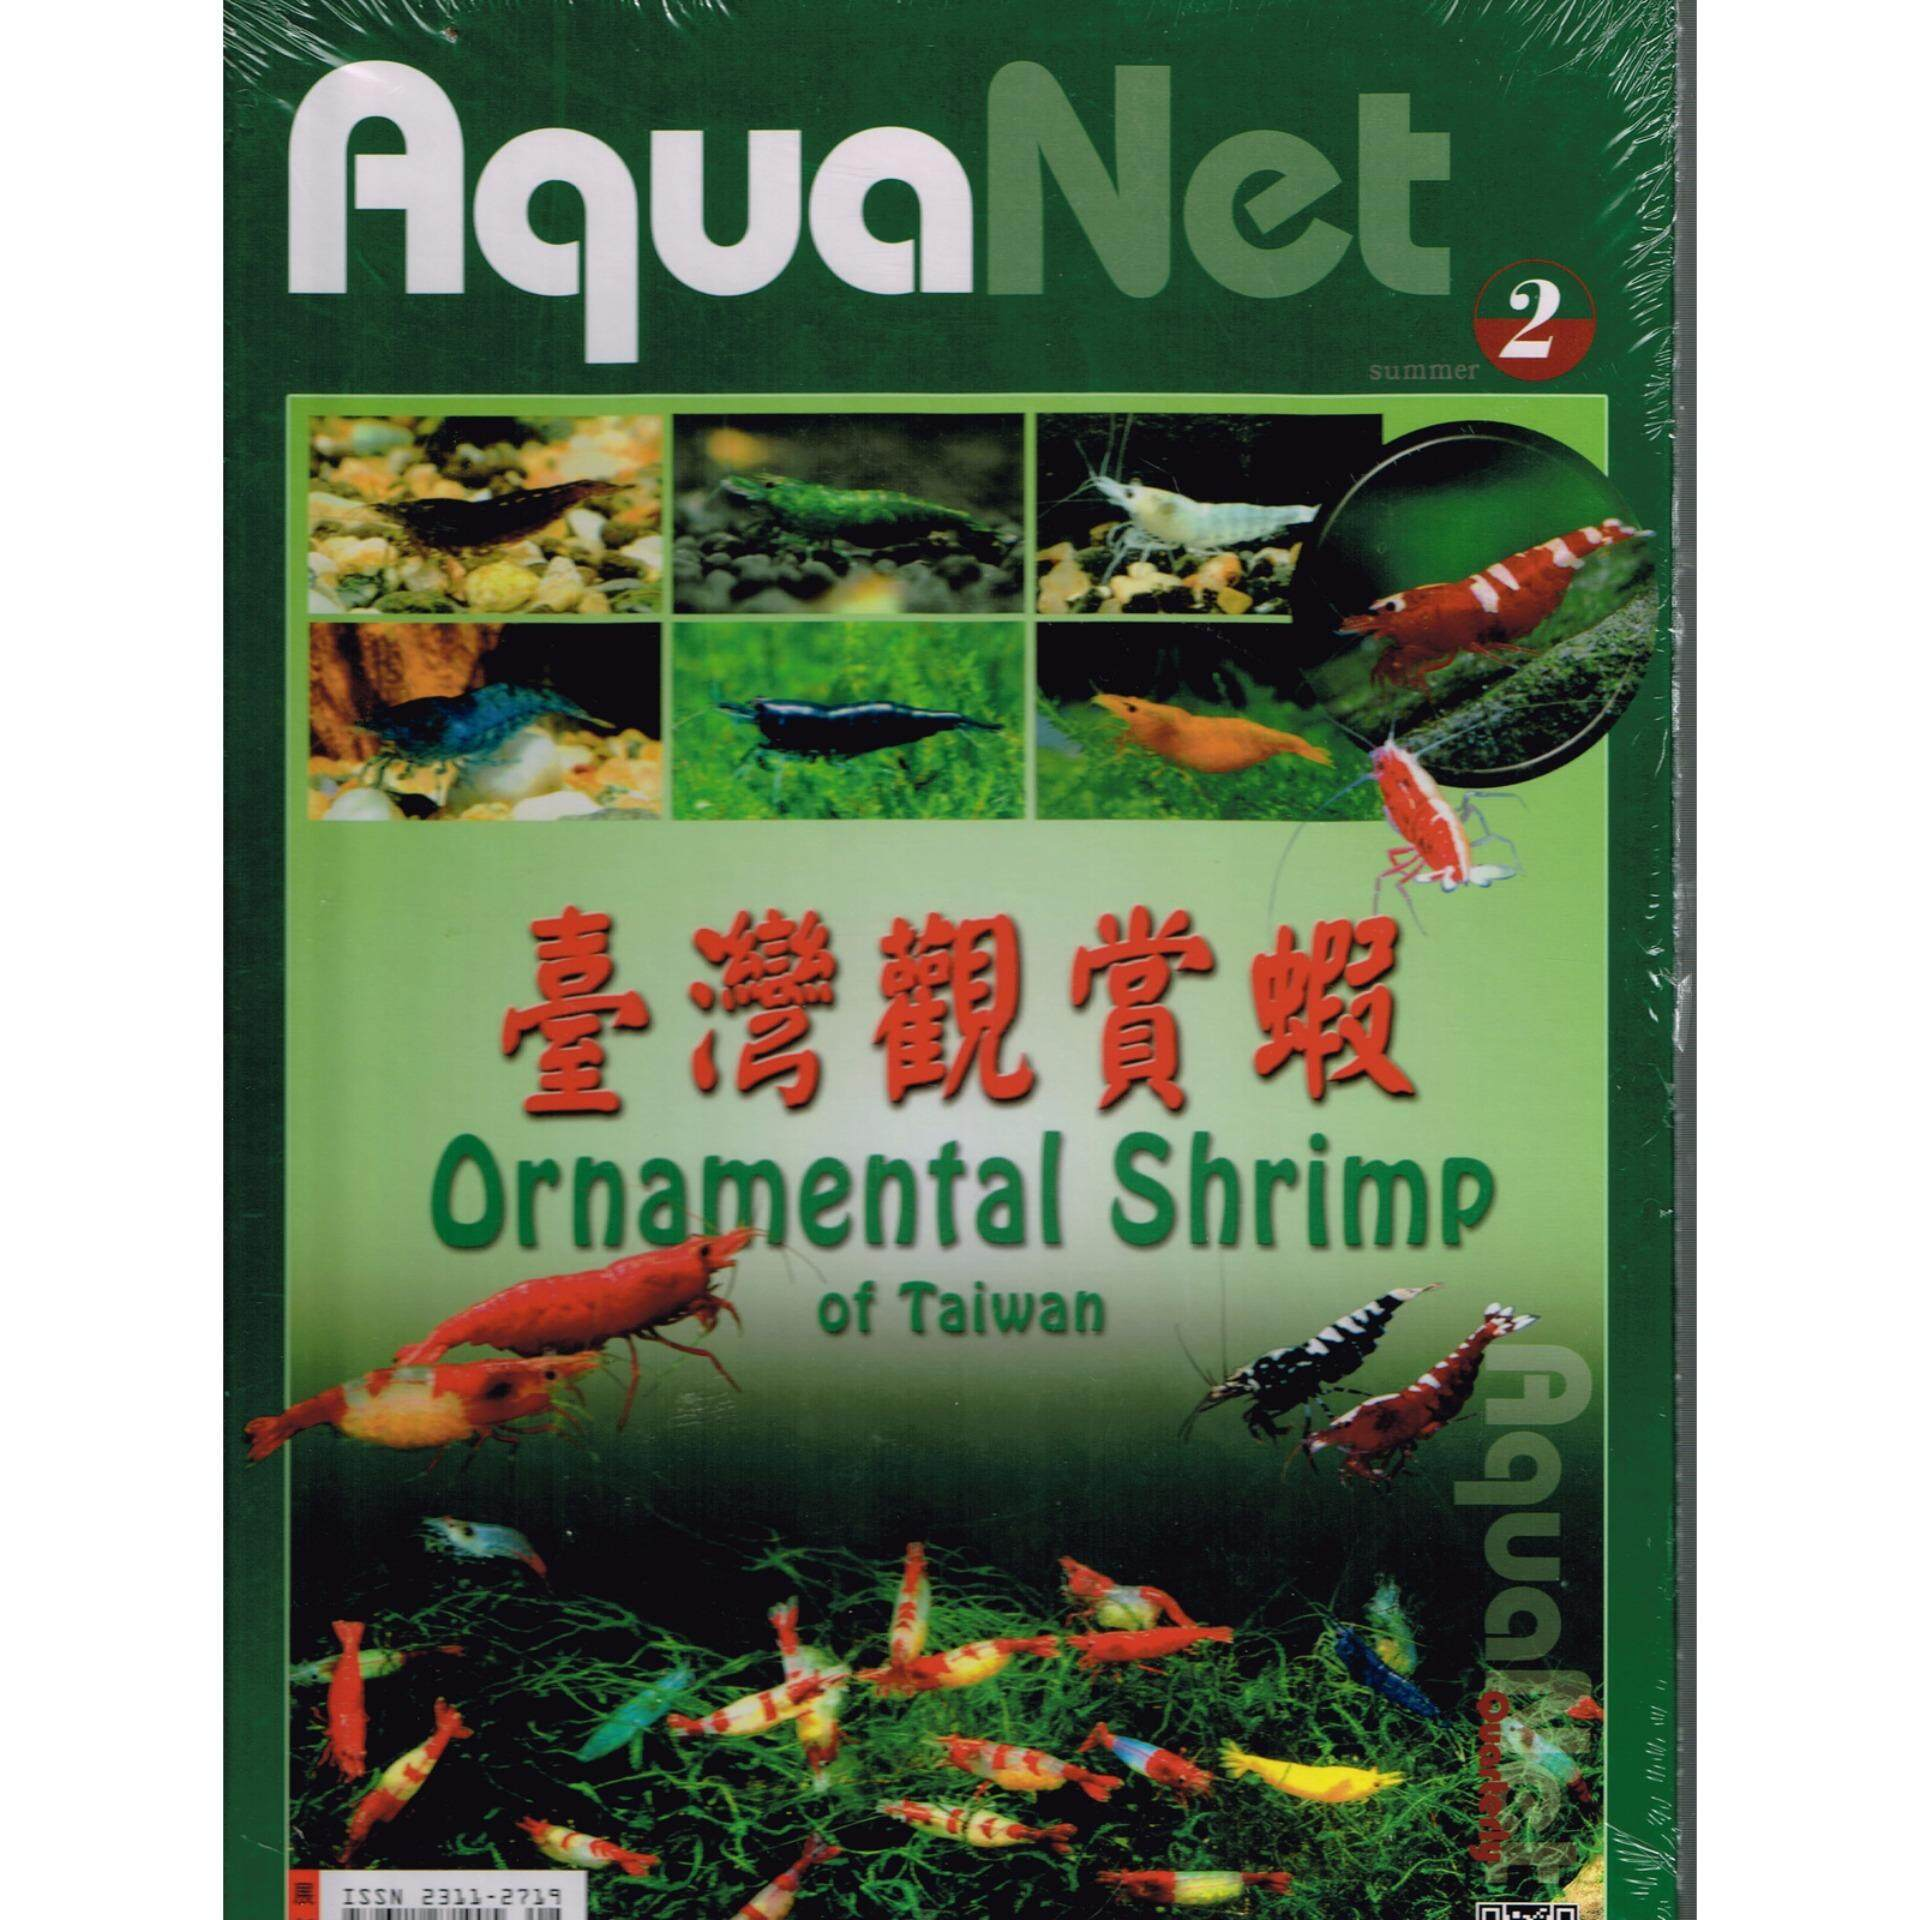 Aquanet Book Ornamental Shrimp of Taiwan